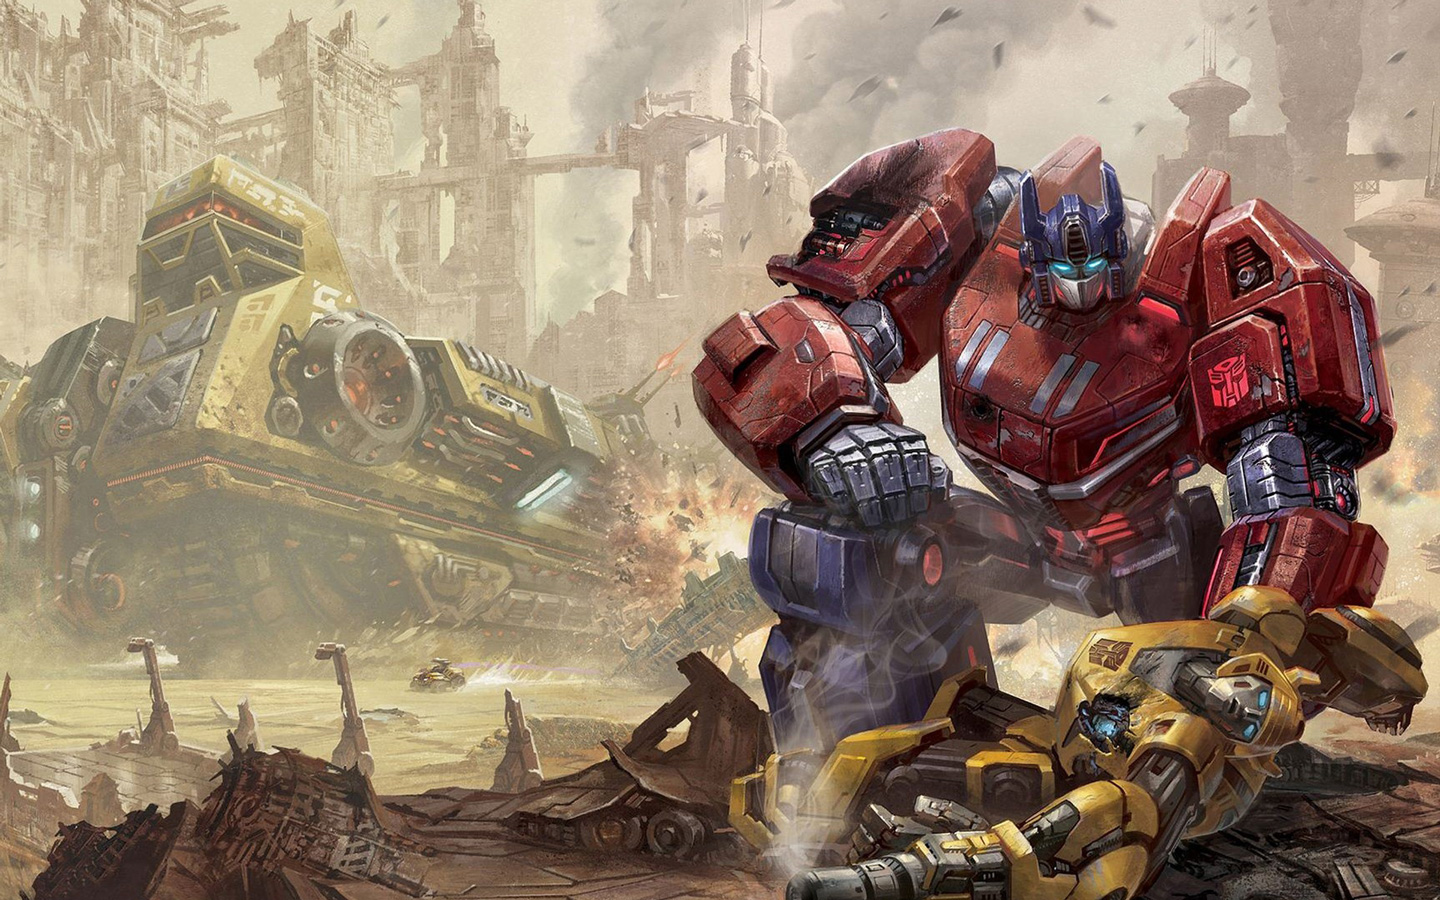 Transformers Fall of Cybertron Wallpaper in 1440x900 1440x900